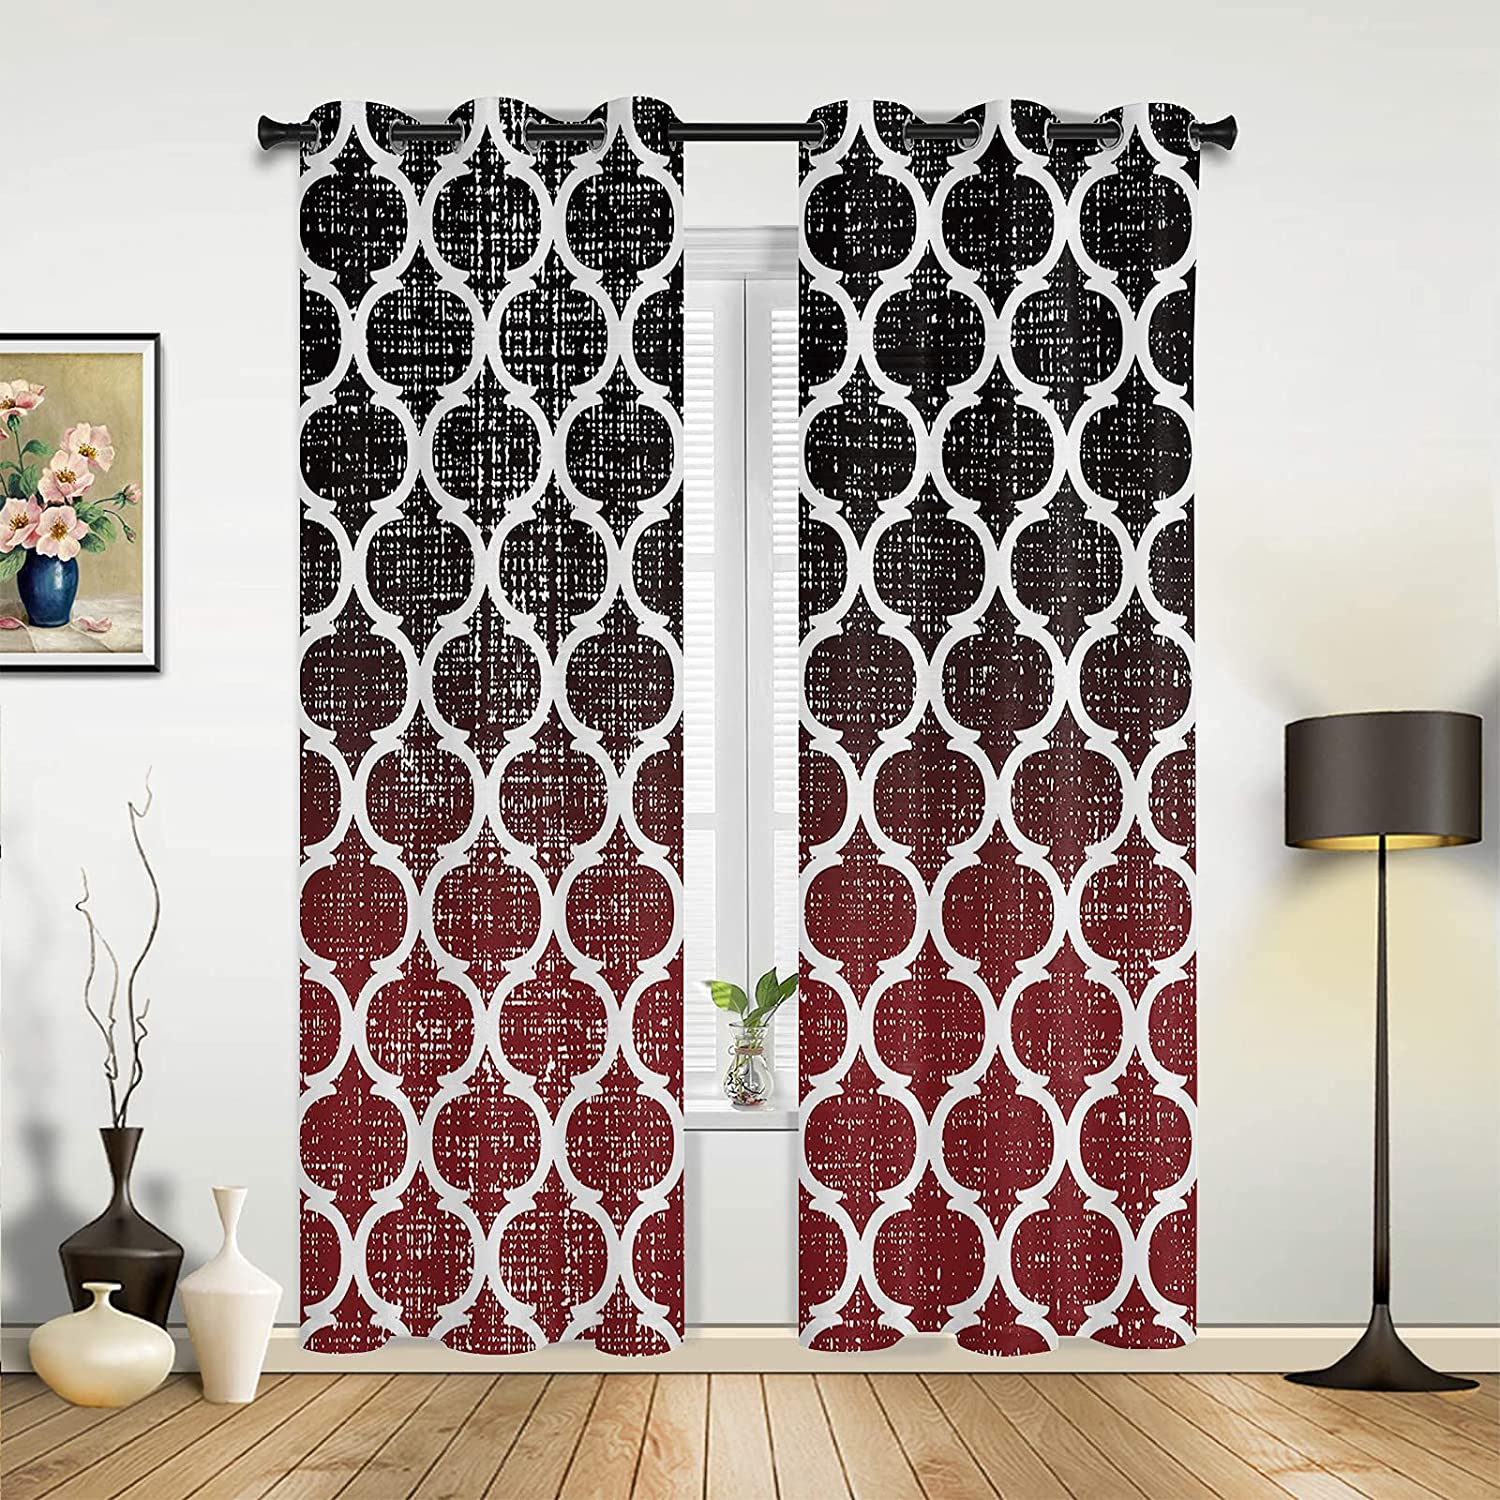 Window Sheer Curtains for Bedroom Room B Oklahoma City Mall Living Moroccan Vintage Max 89% OFF